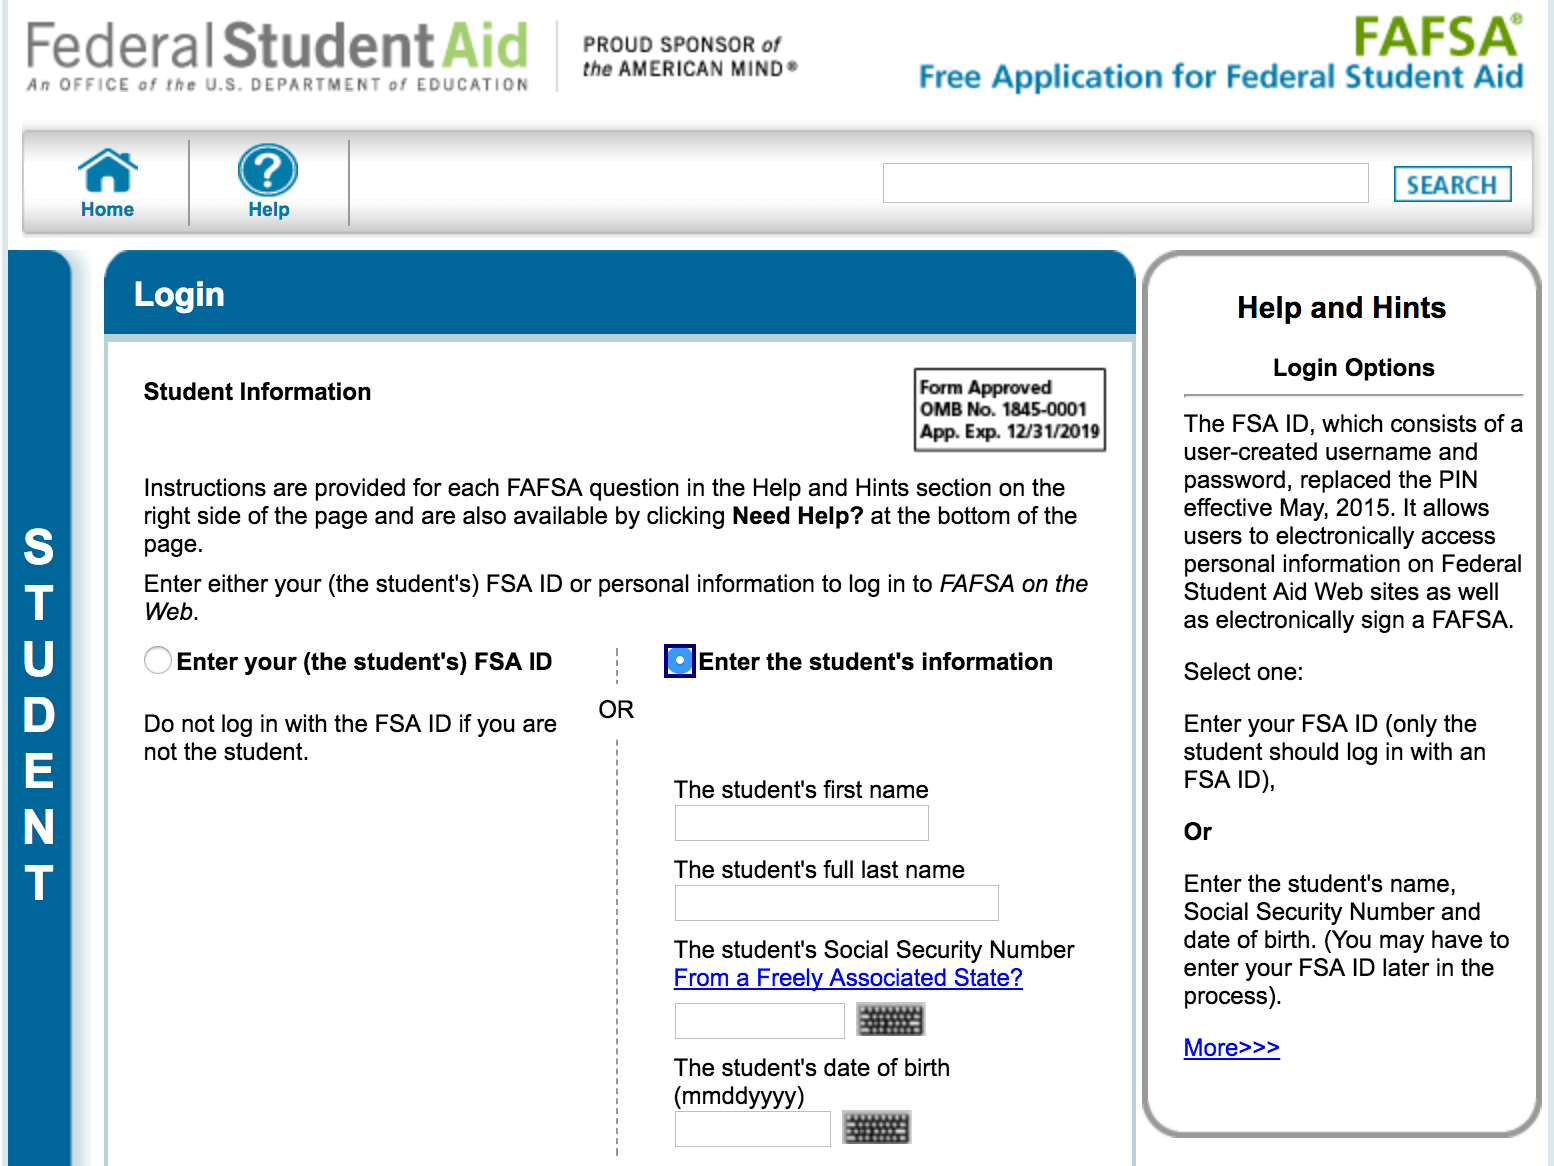 Once you have a student's name, birthday and SSN, the US Department